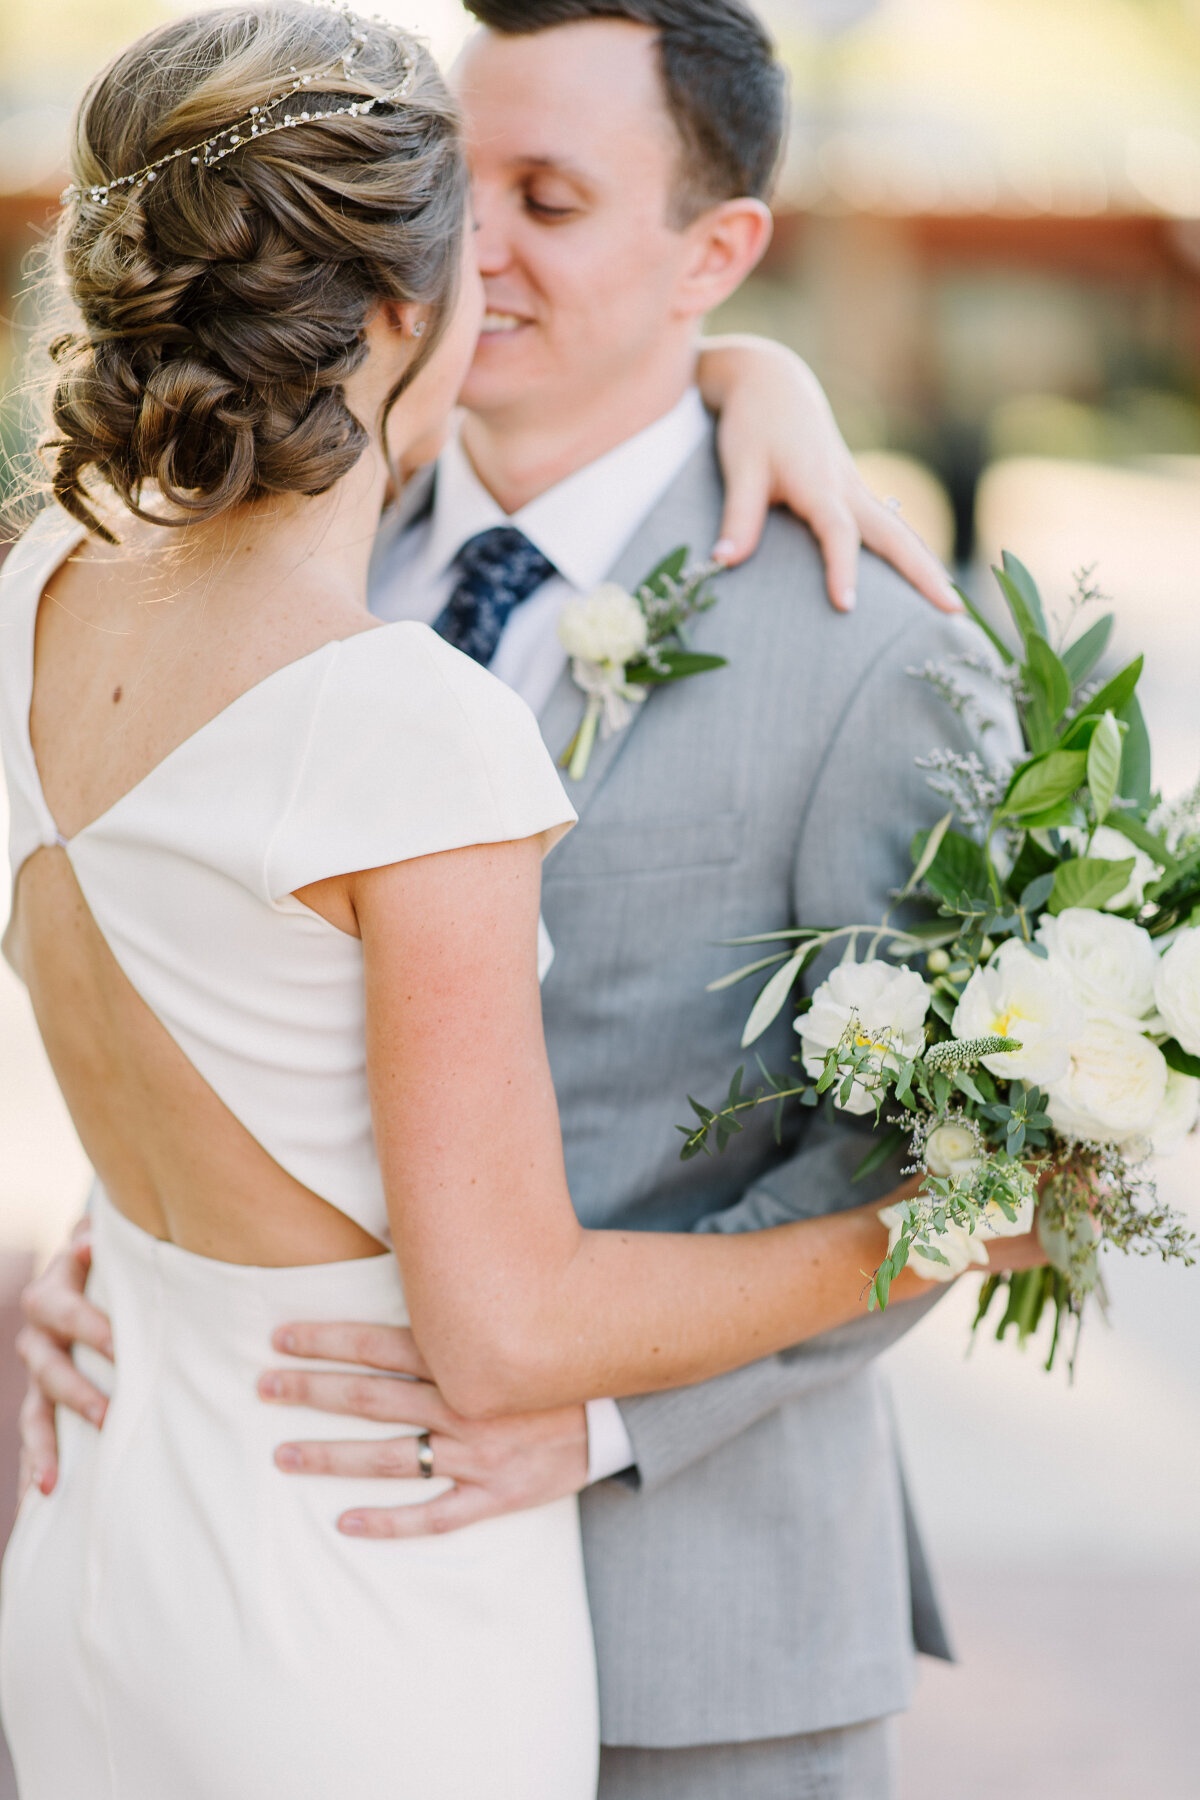 Stephanie & Steve Wedding Gallery | Ashton Events | Full Service Wedding Planning, Design and Florals